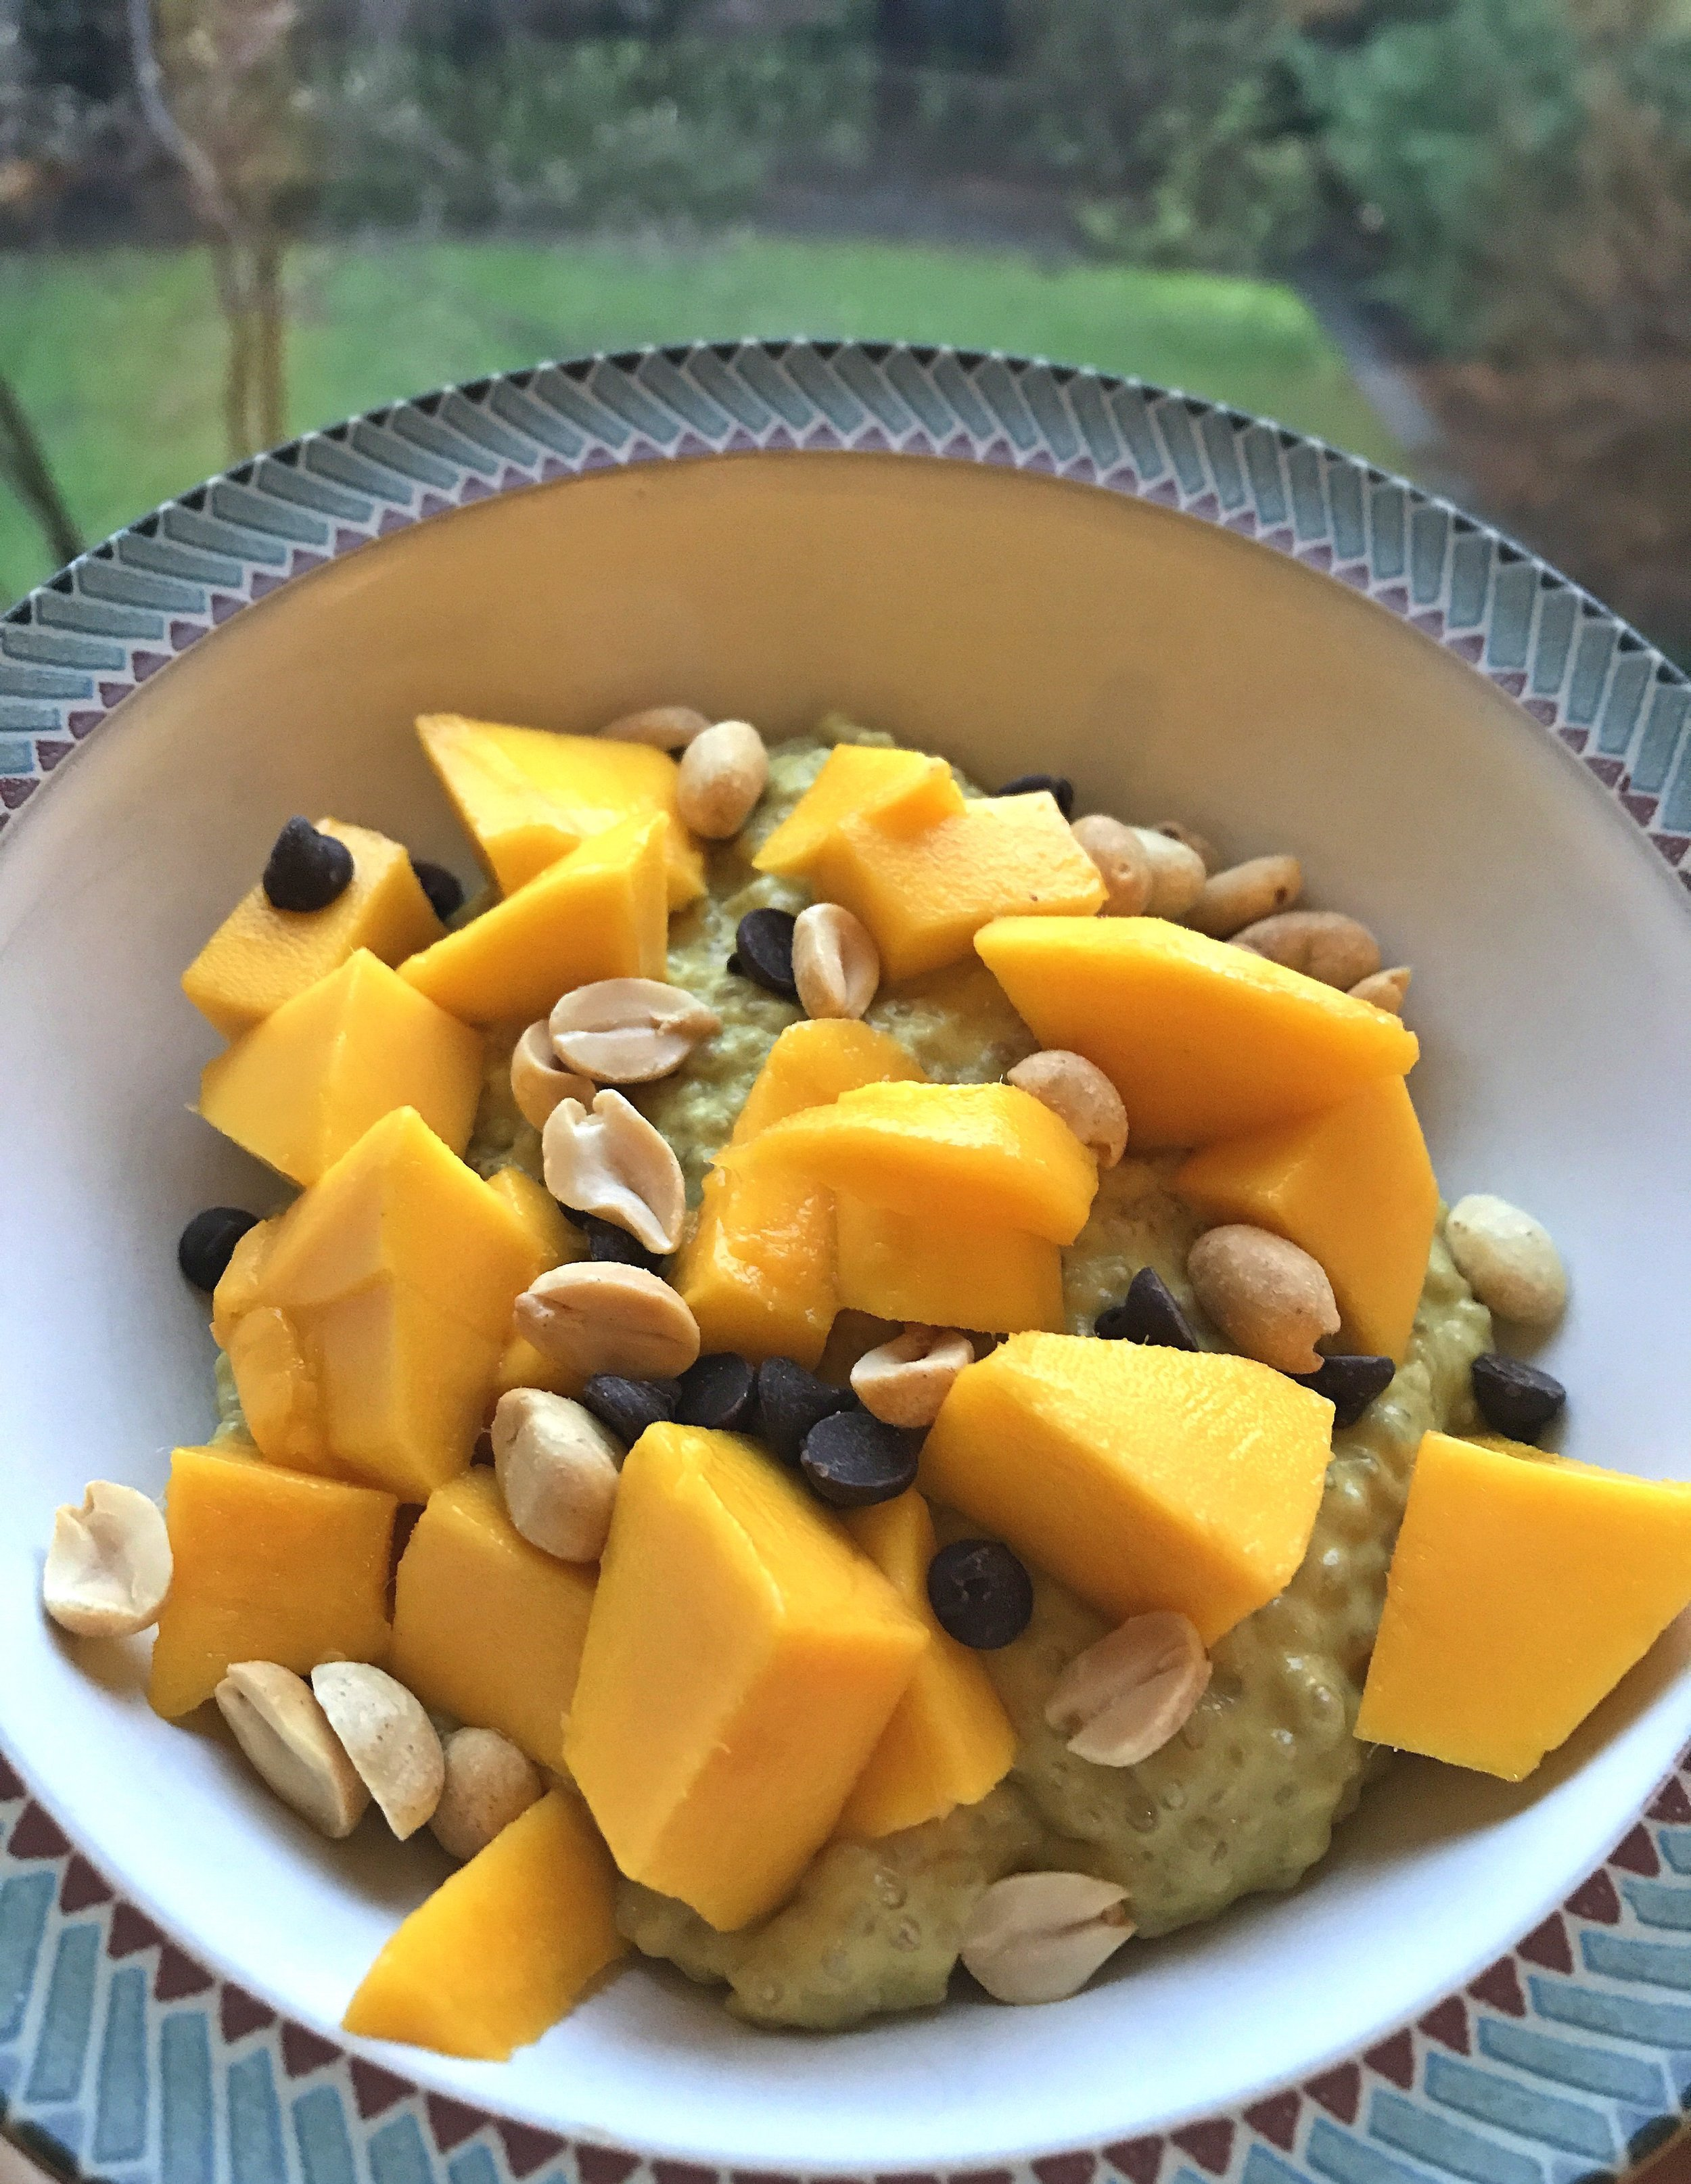 Golden Mango Chia Pudding topped with diced mango, roasted peanuts, and Lily's Sweets sugar-free chocolate chips.